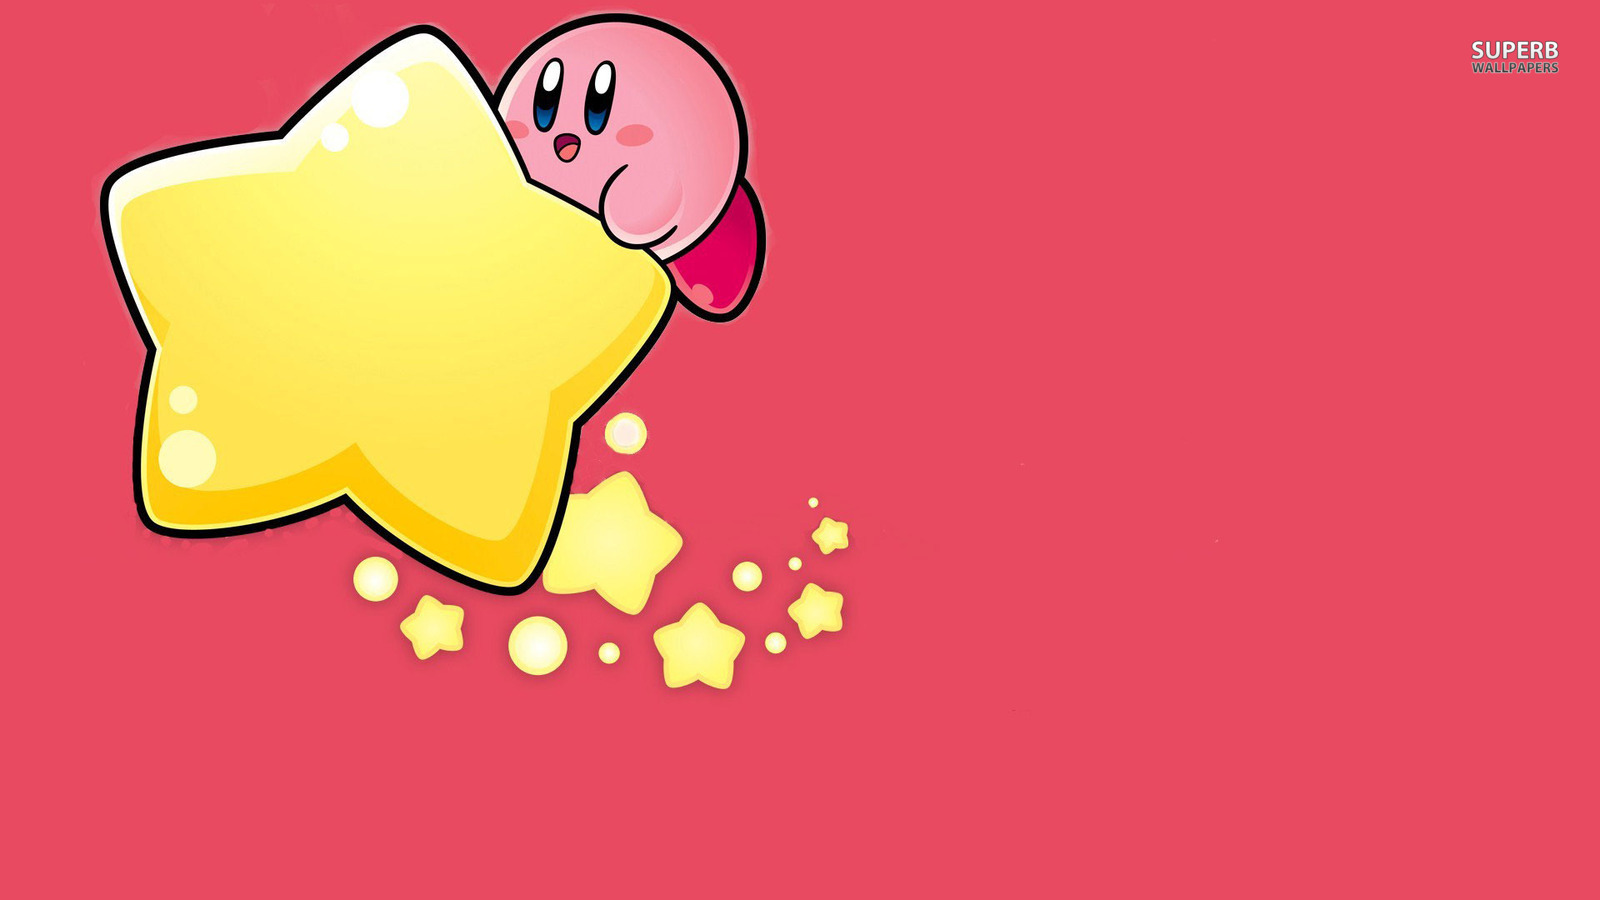 Video Games images Kirby HD wallpaper and background photos 38690745 1600x900